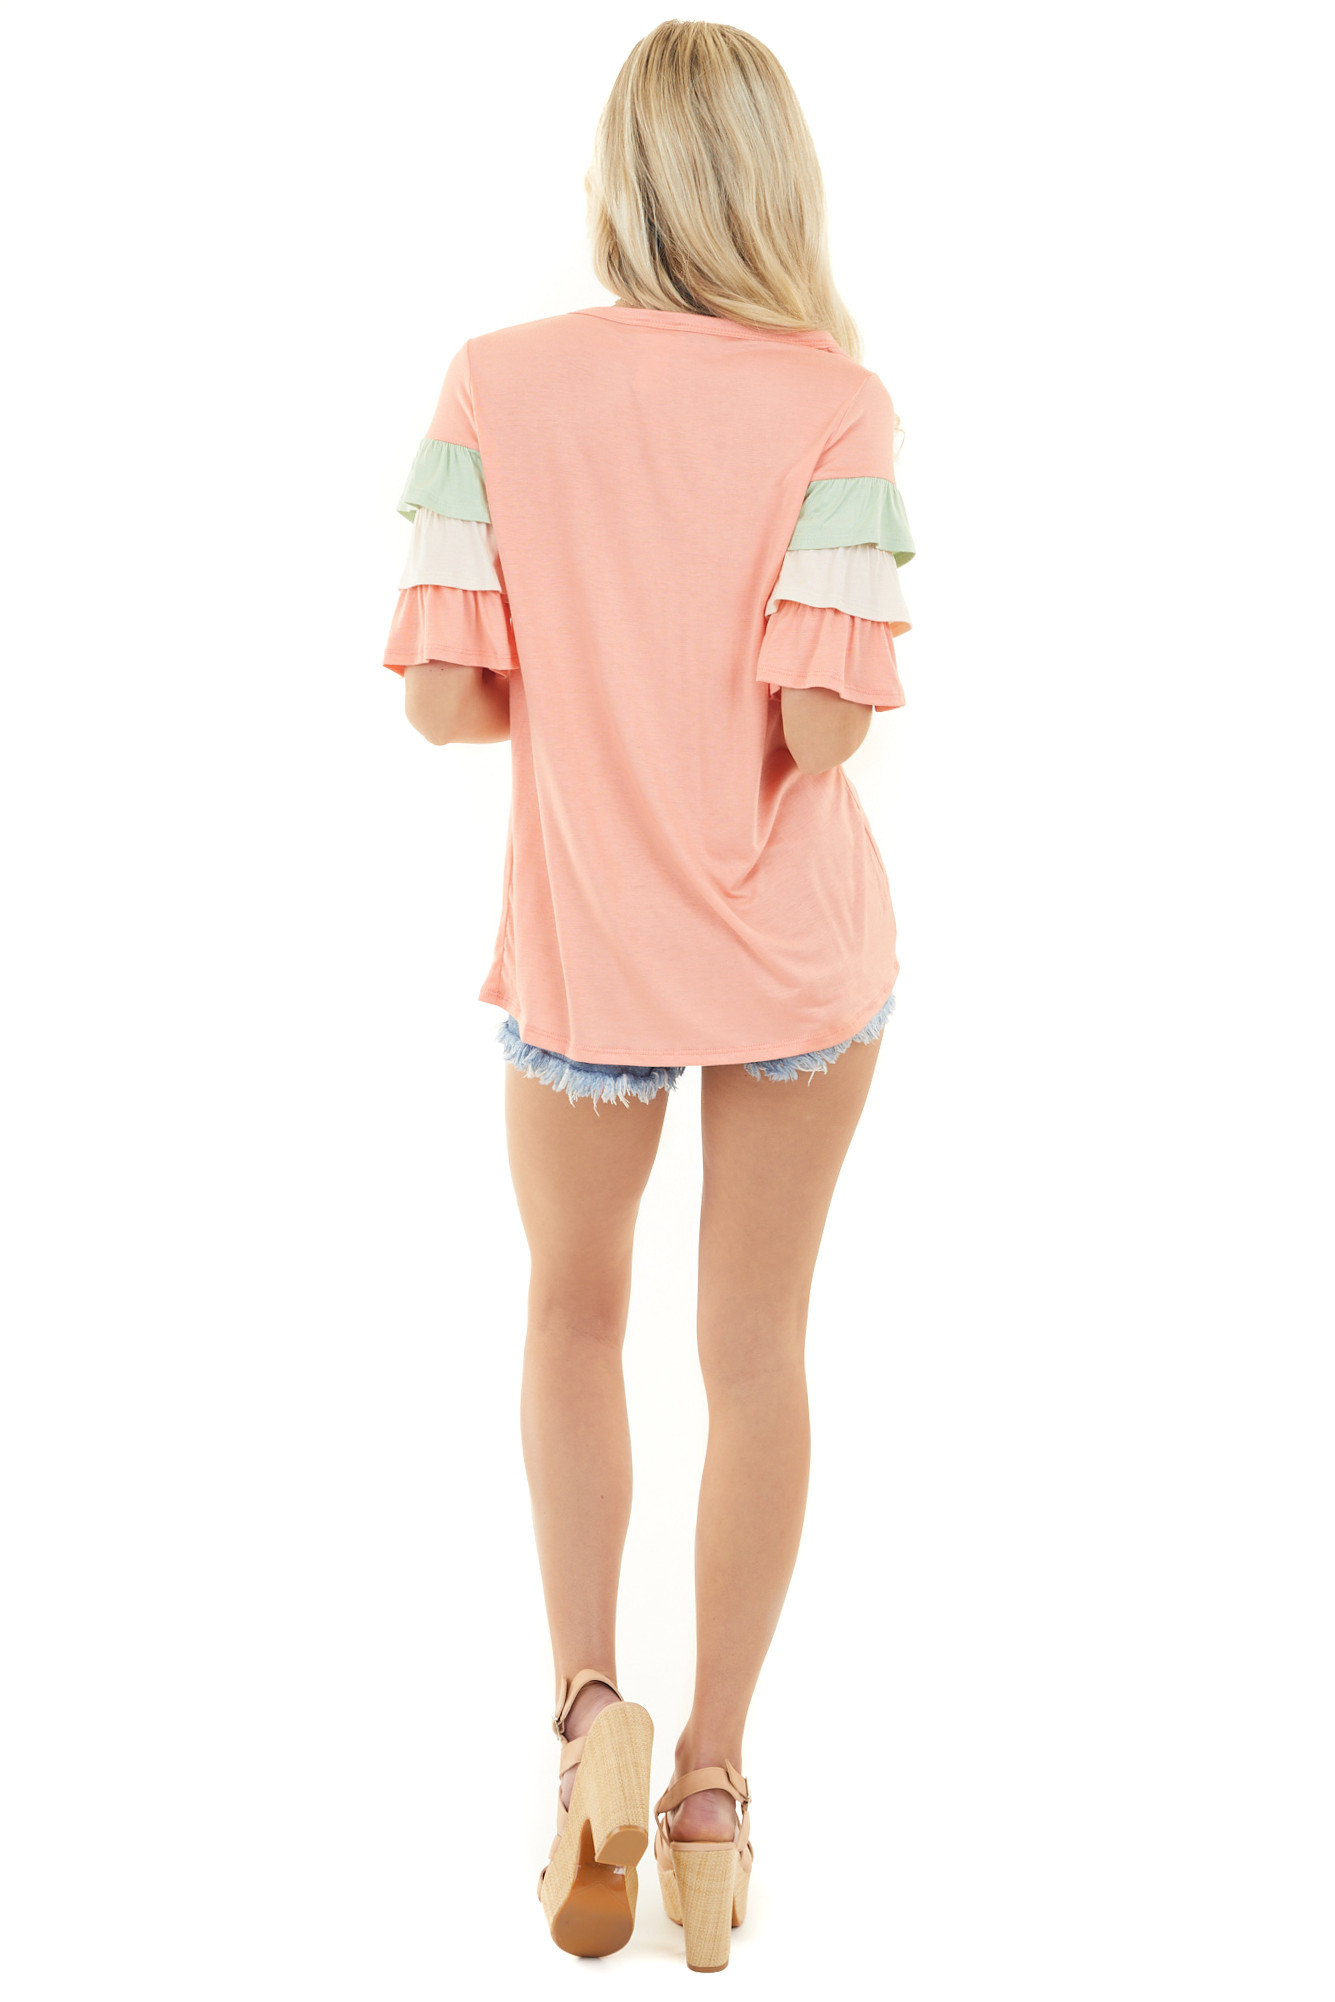 Coral Multicolor Knit Top with Half Length Ruffle Sleeves